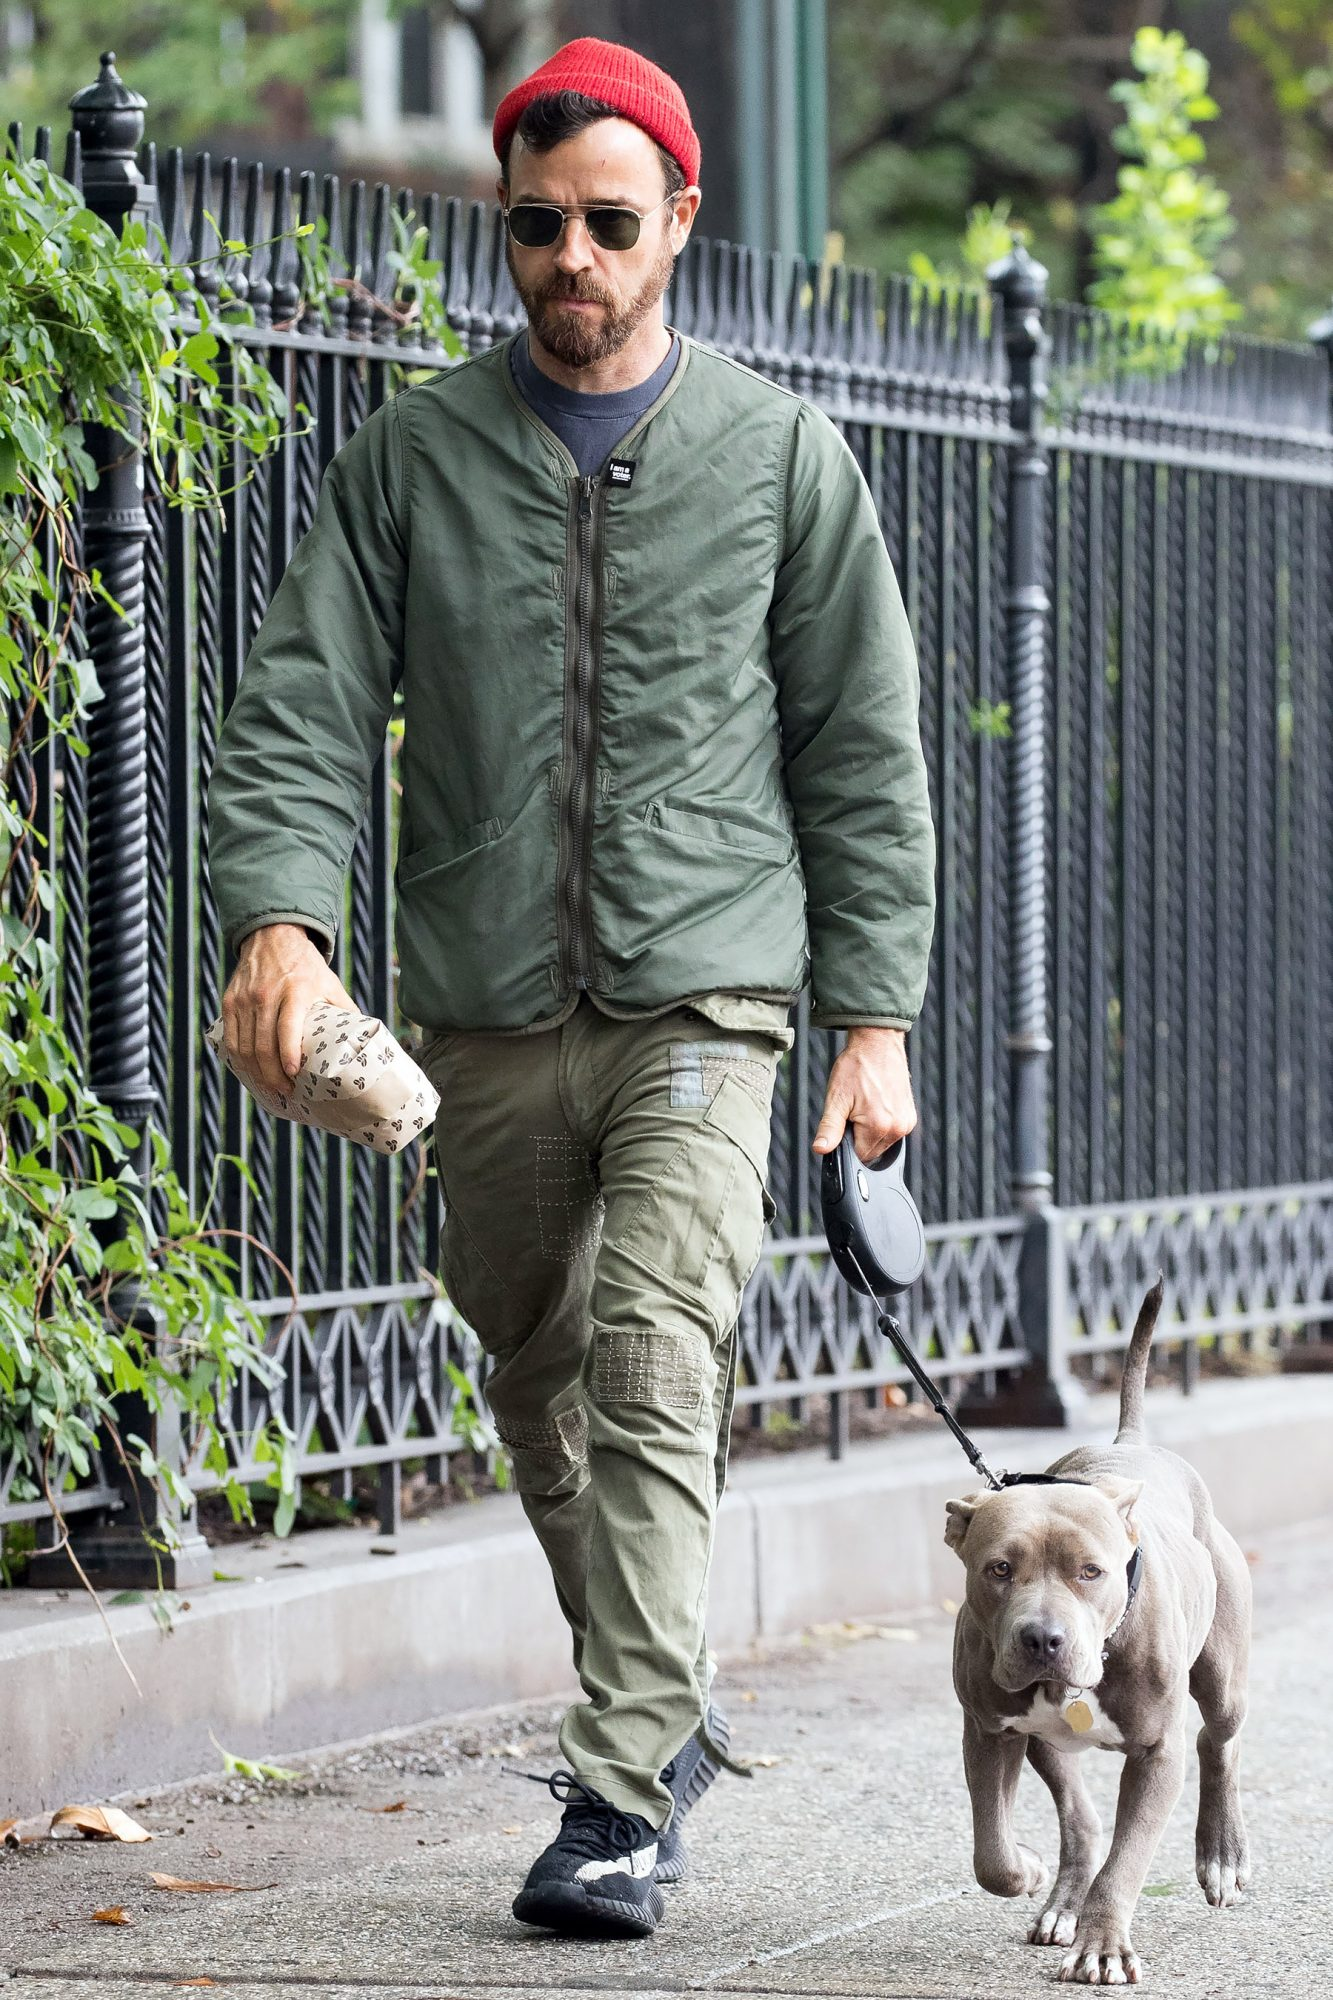 EXCLUSIVE: Justin Theroux seen picking up a coffee bag from a local grocery store while walking his dog in New York City